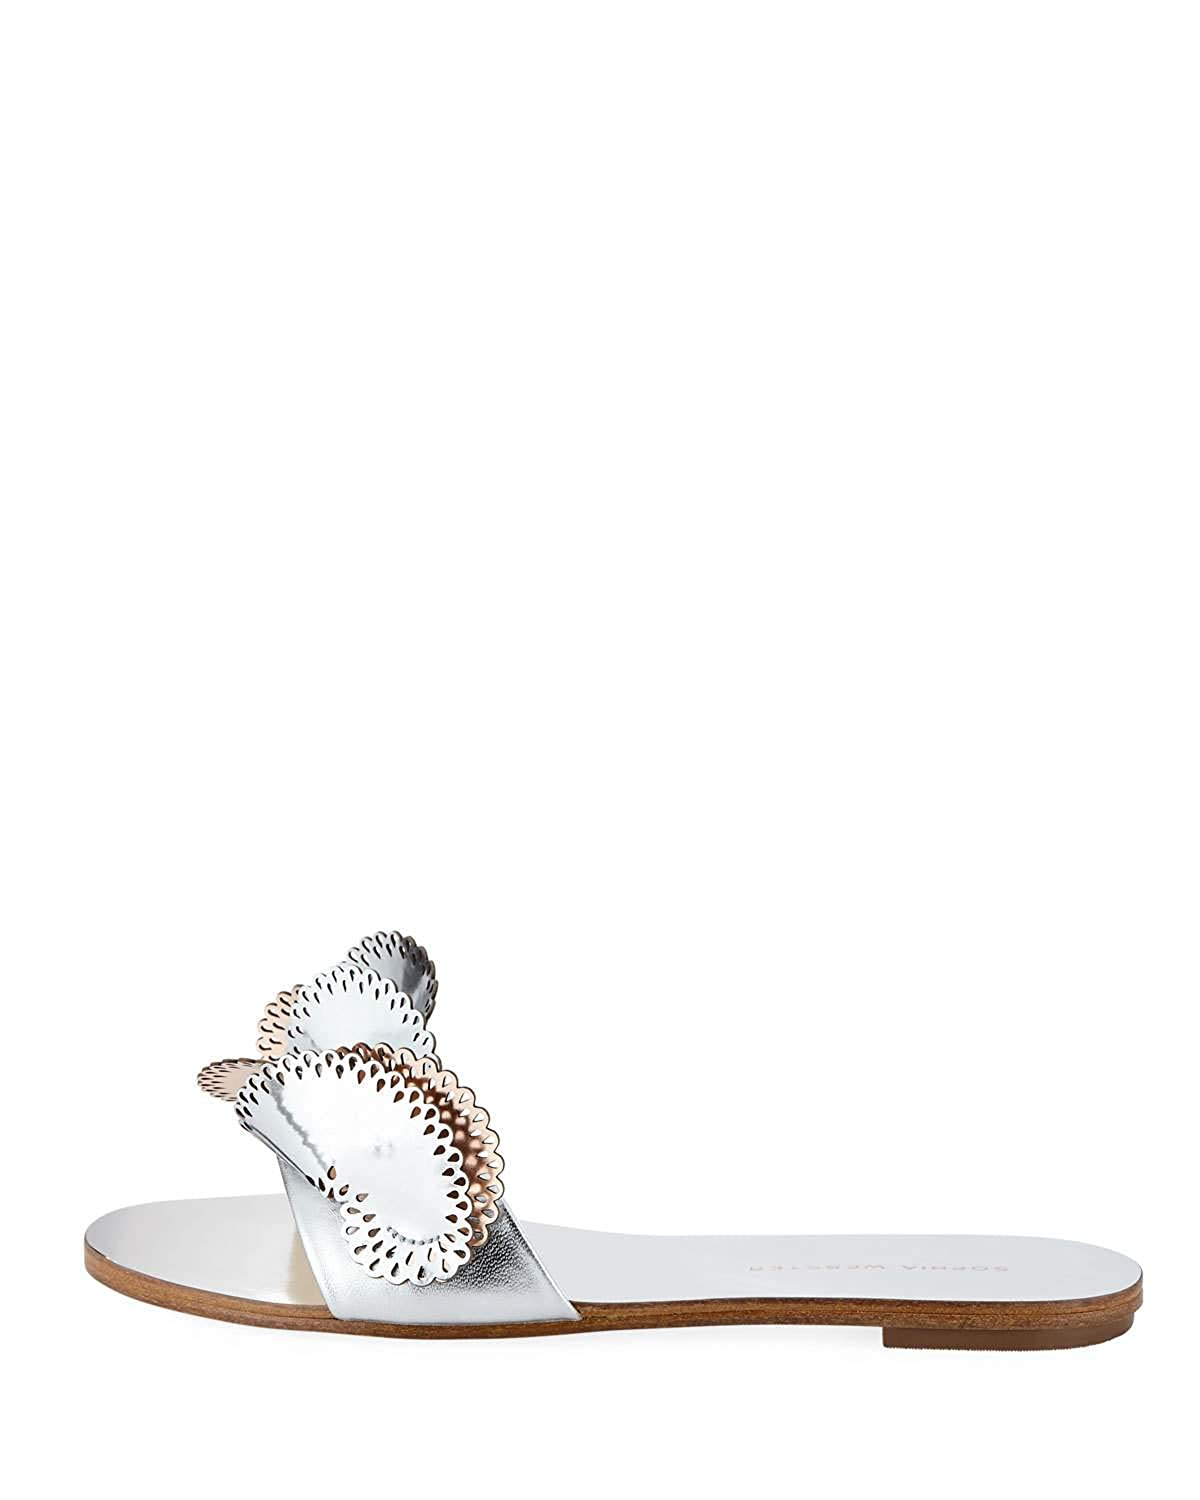 SOPHIA WEBSTER Soleil Embellished Mirror Leather Slide Sandals 37 Silver//Gold